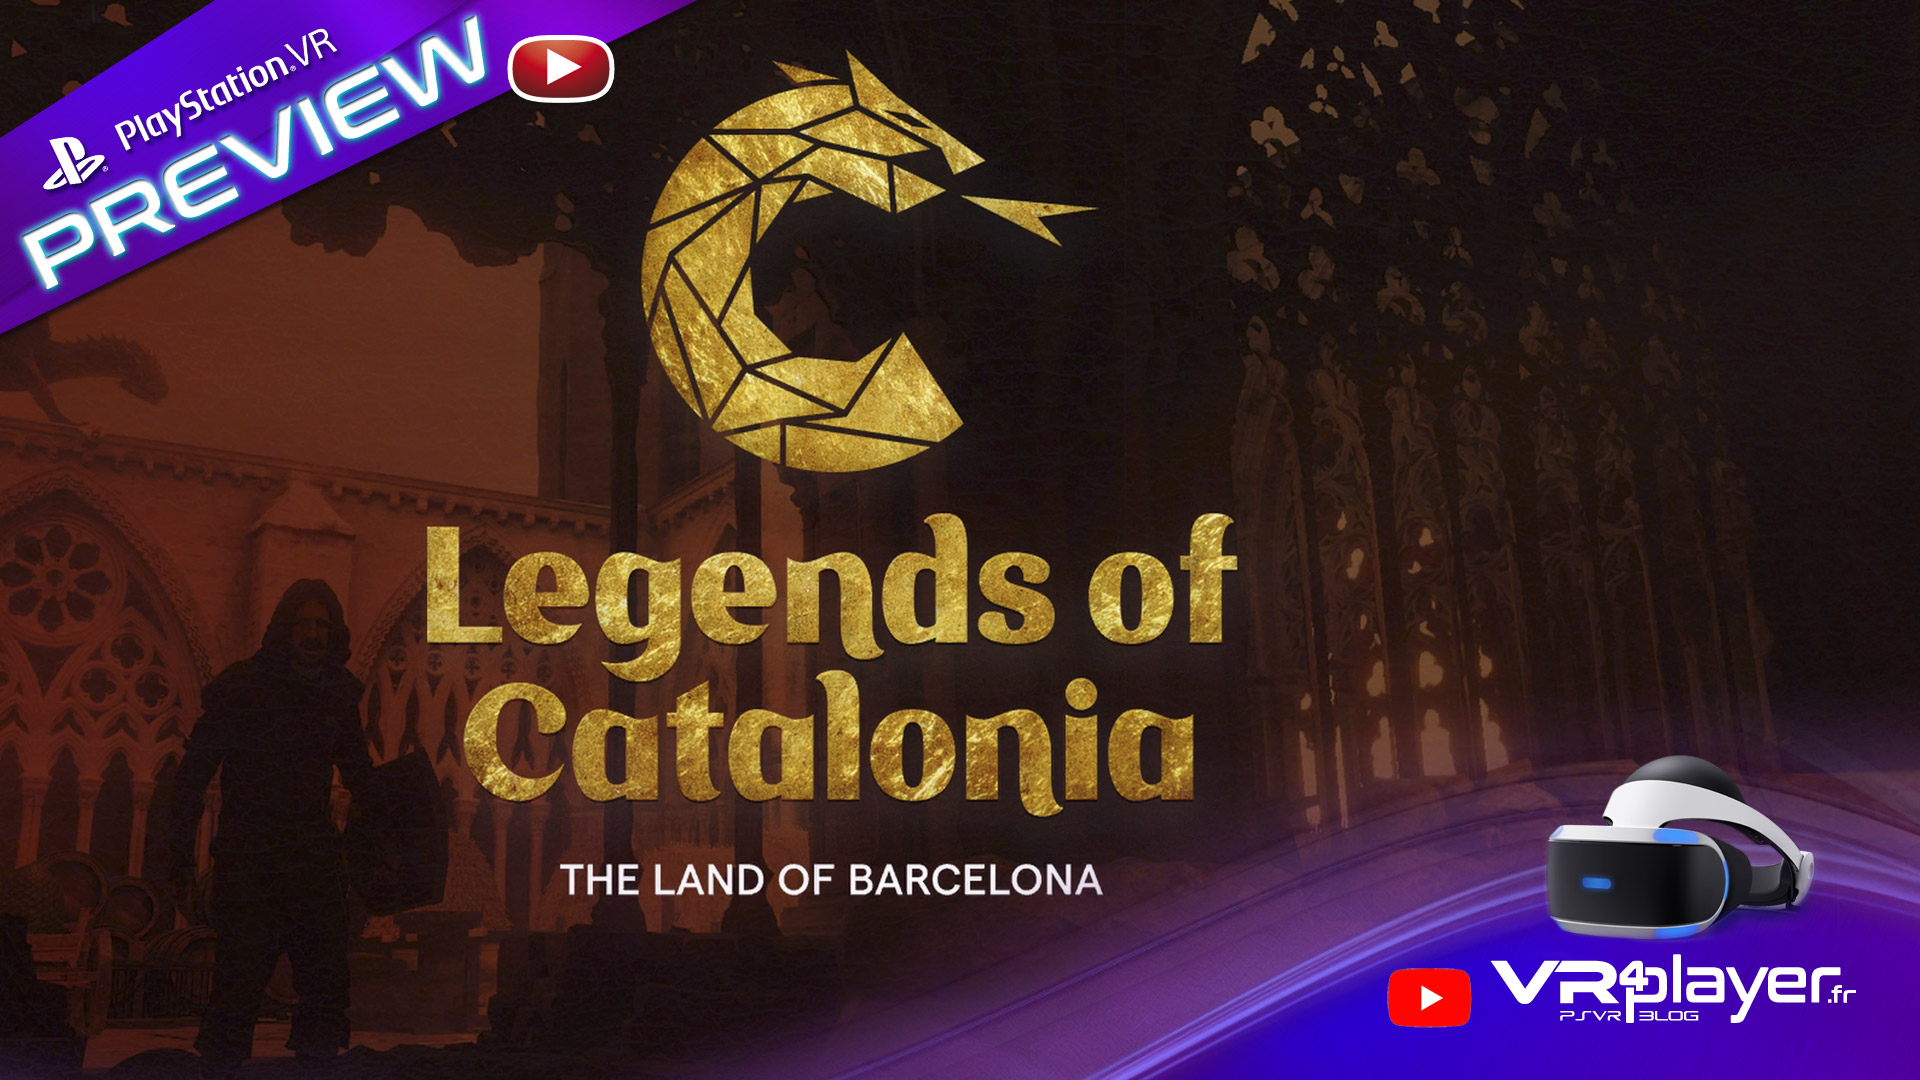 Preview de Legends of Catalonia sur PlayStation VR - vr4player.fr